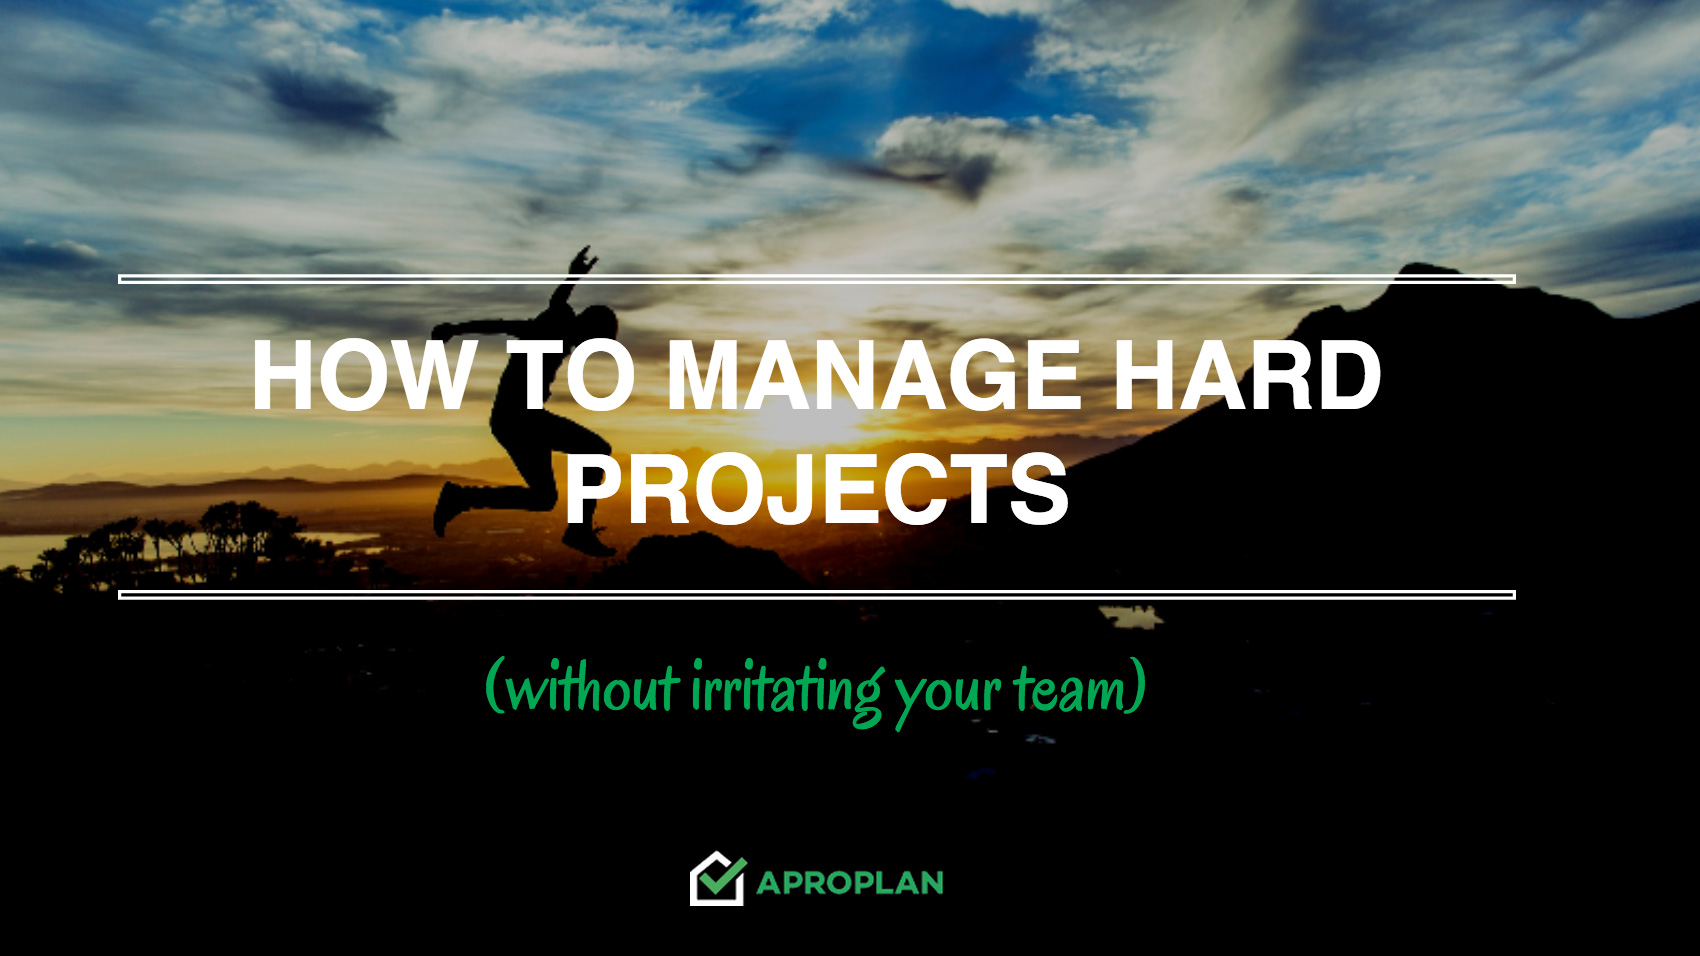 Hard Projects Aproplan smartbuilding